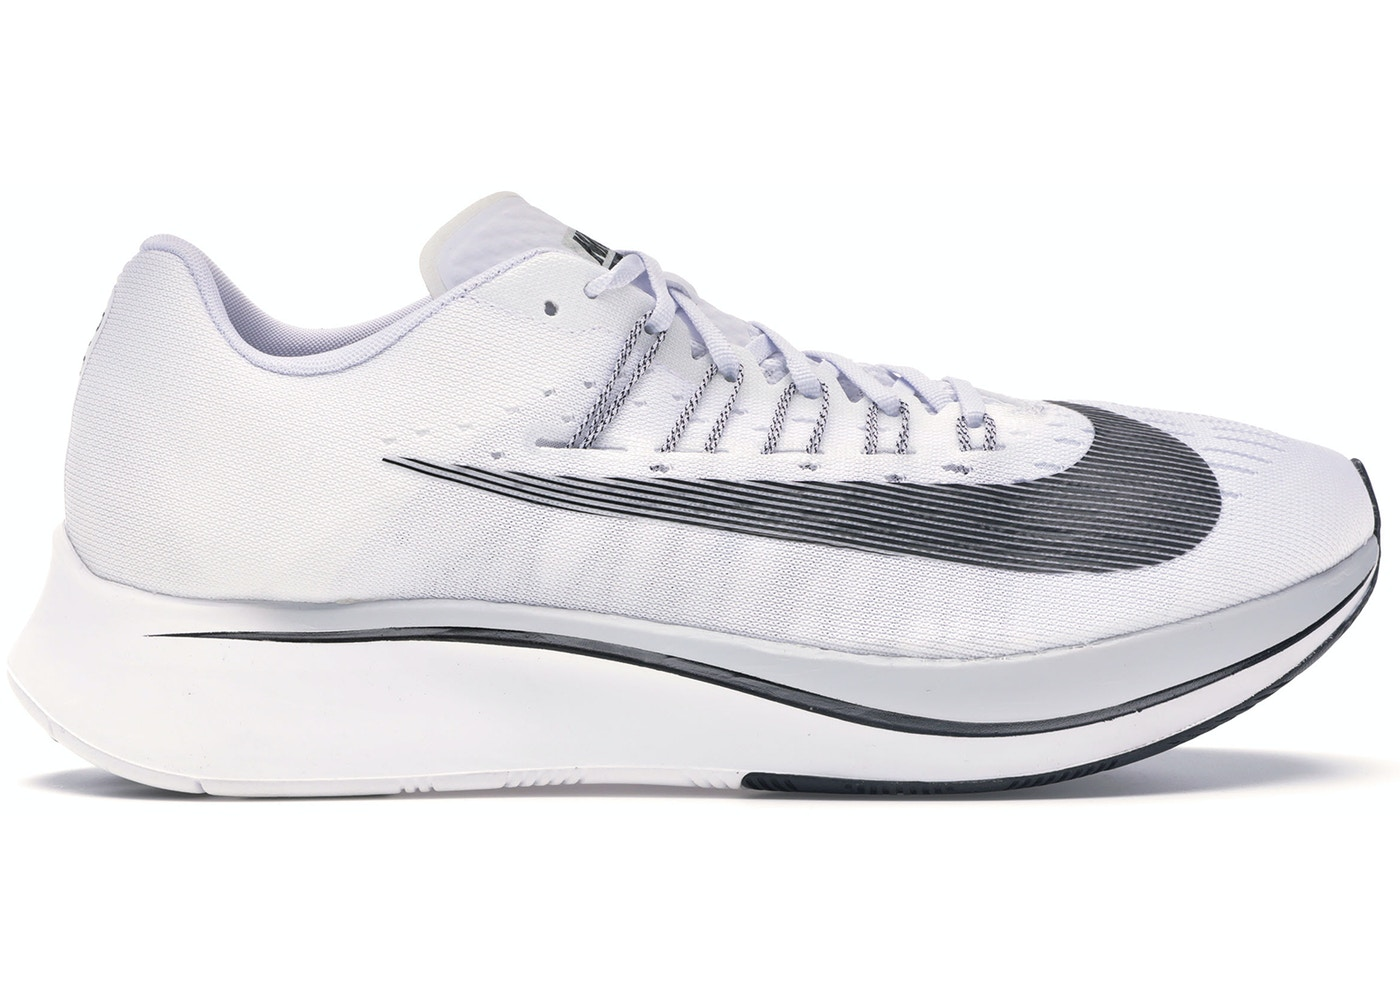 85013732c3c6a Nike Zoom Fly White Pure Platinum Black - 880848-100